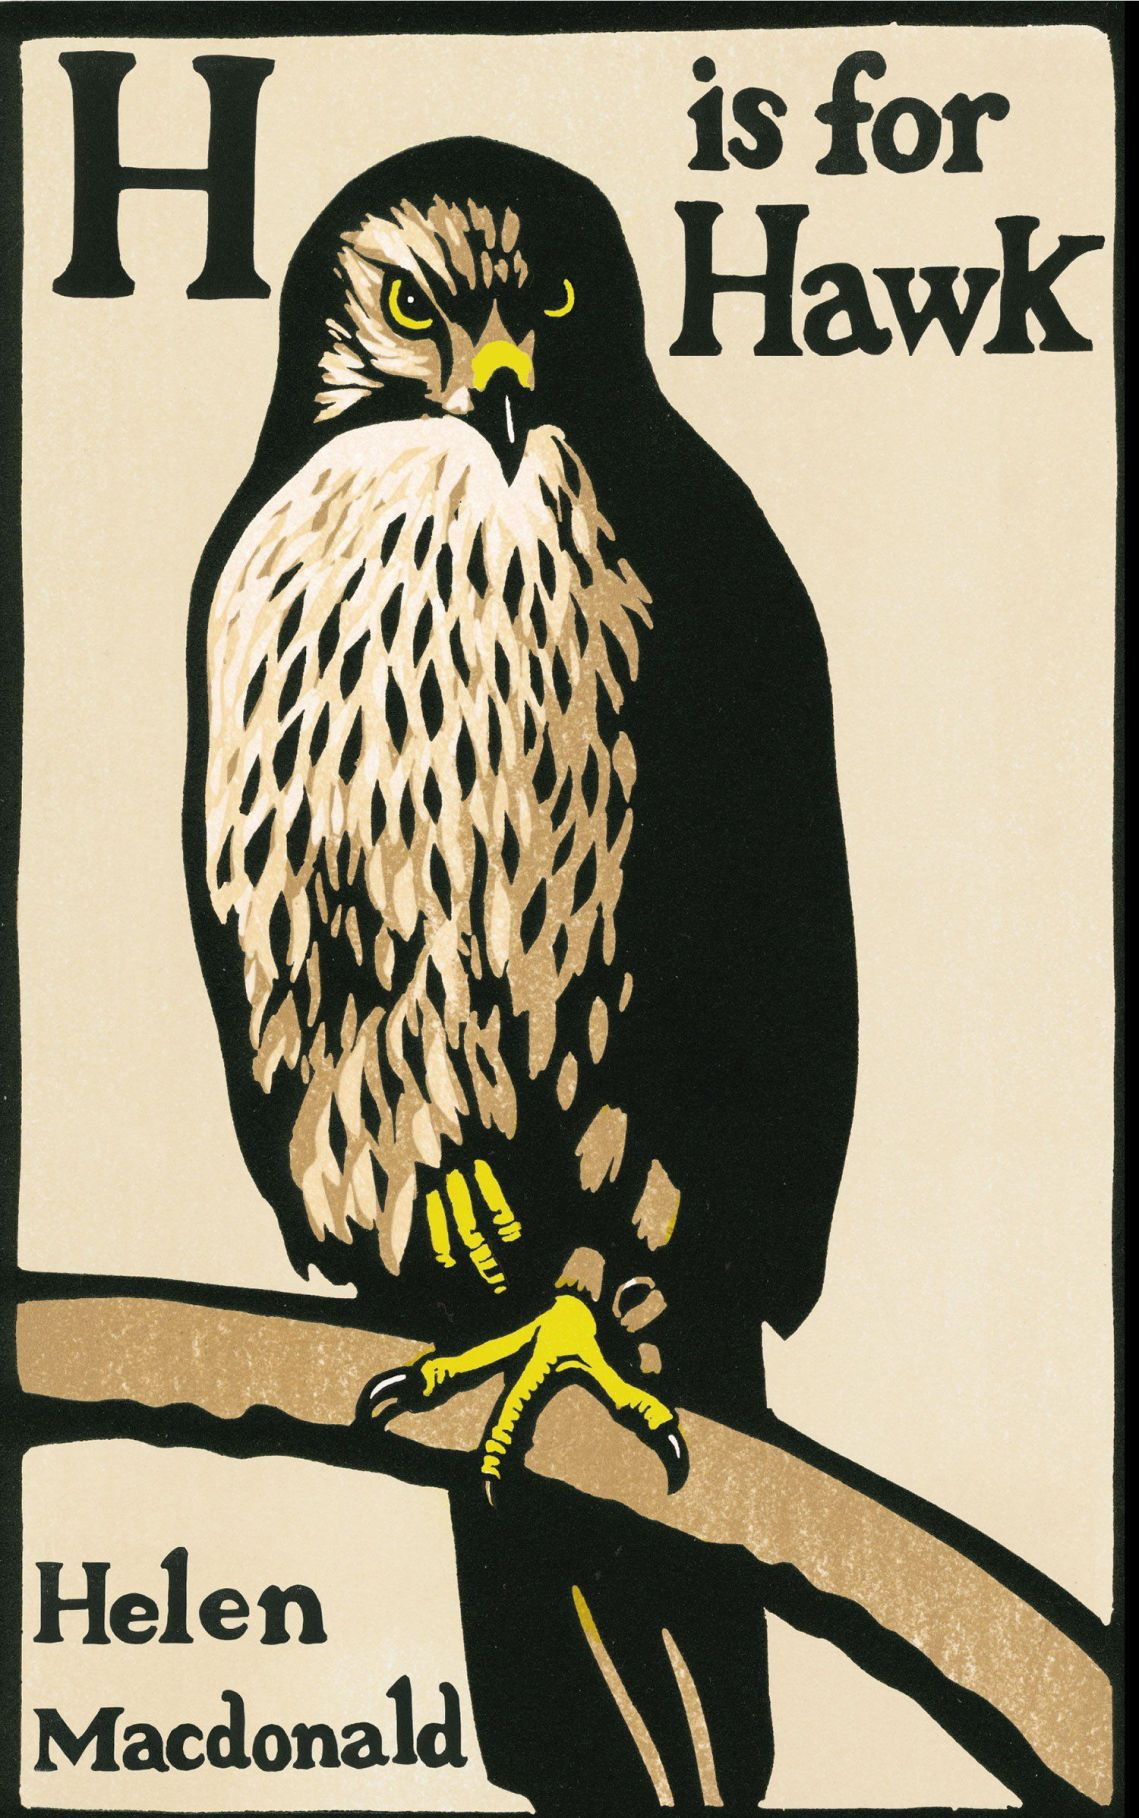 'H is for Hawk'